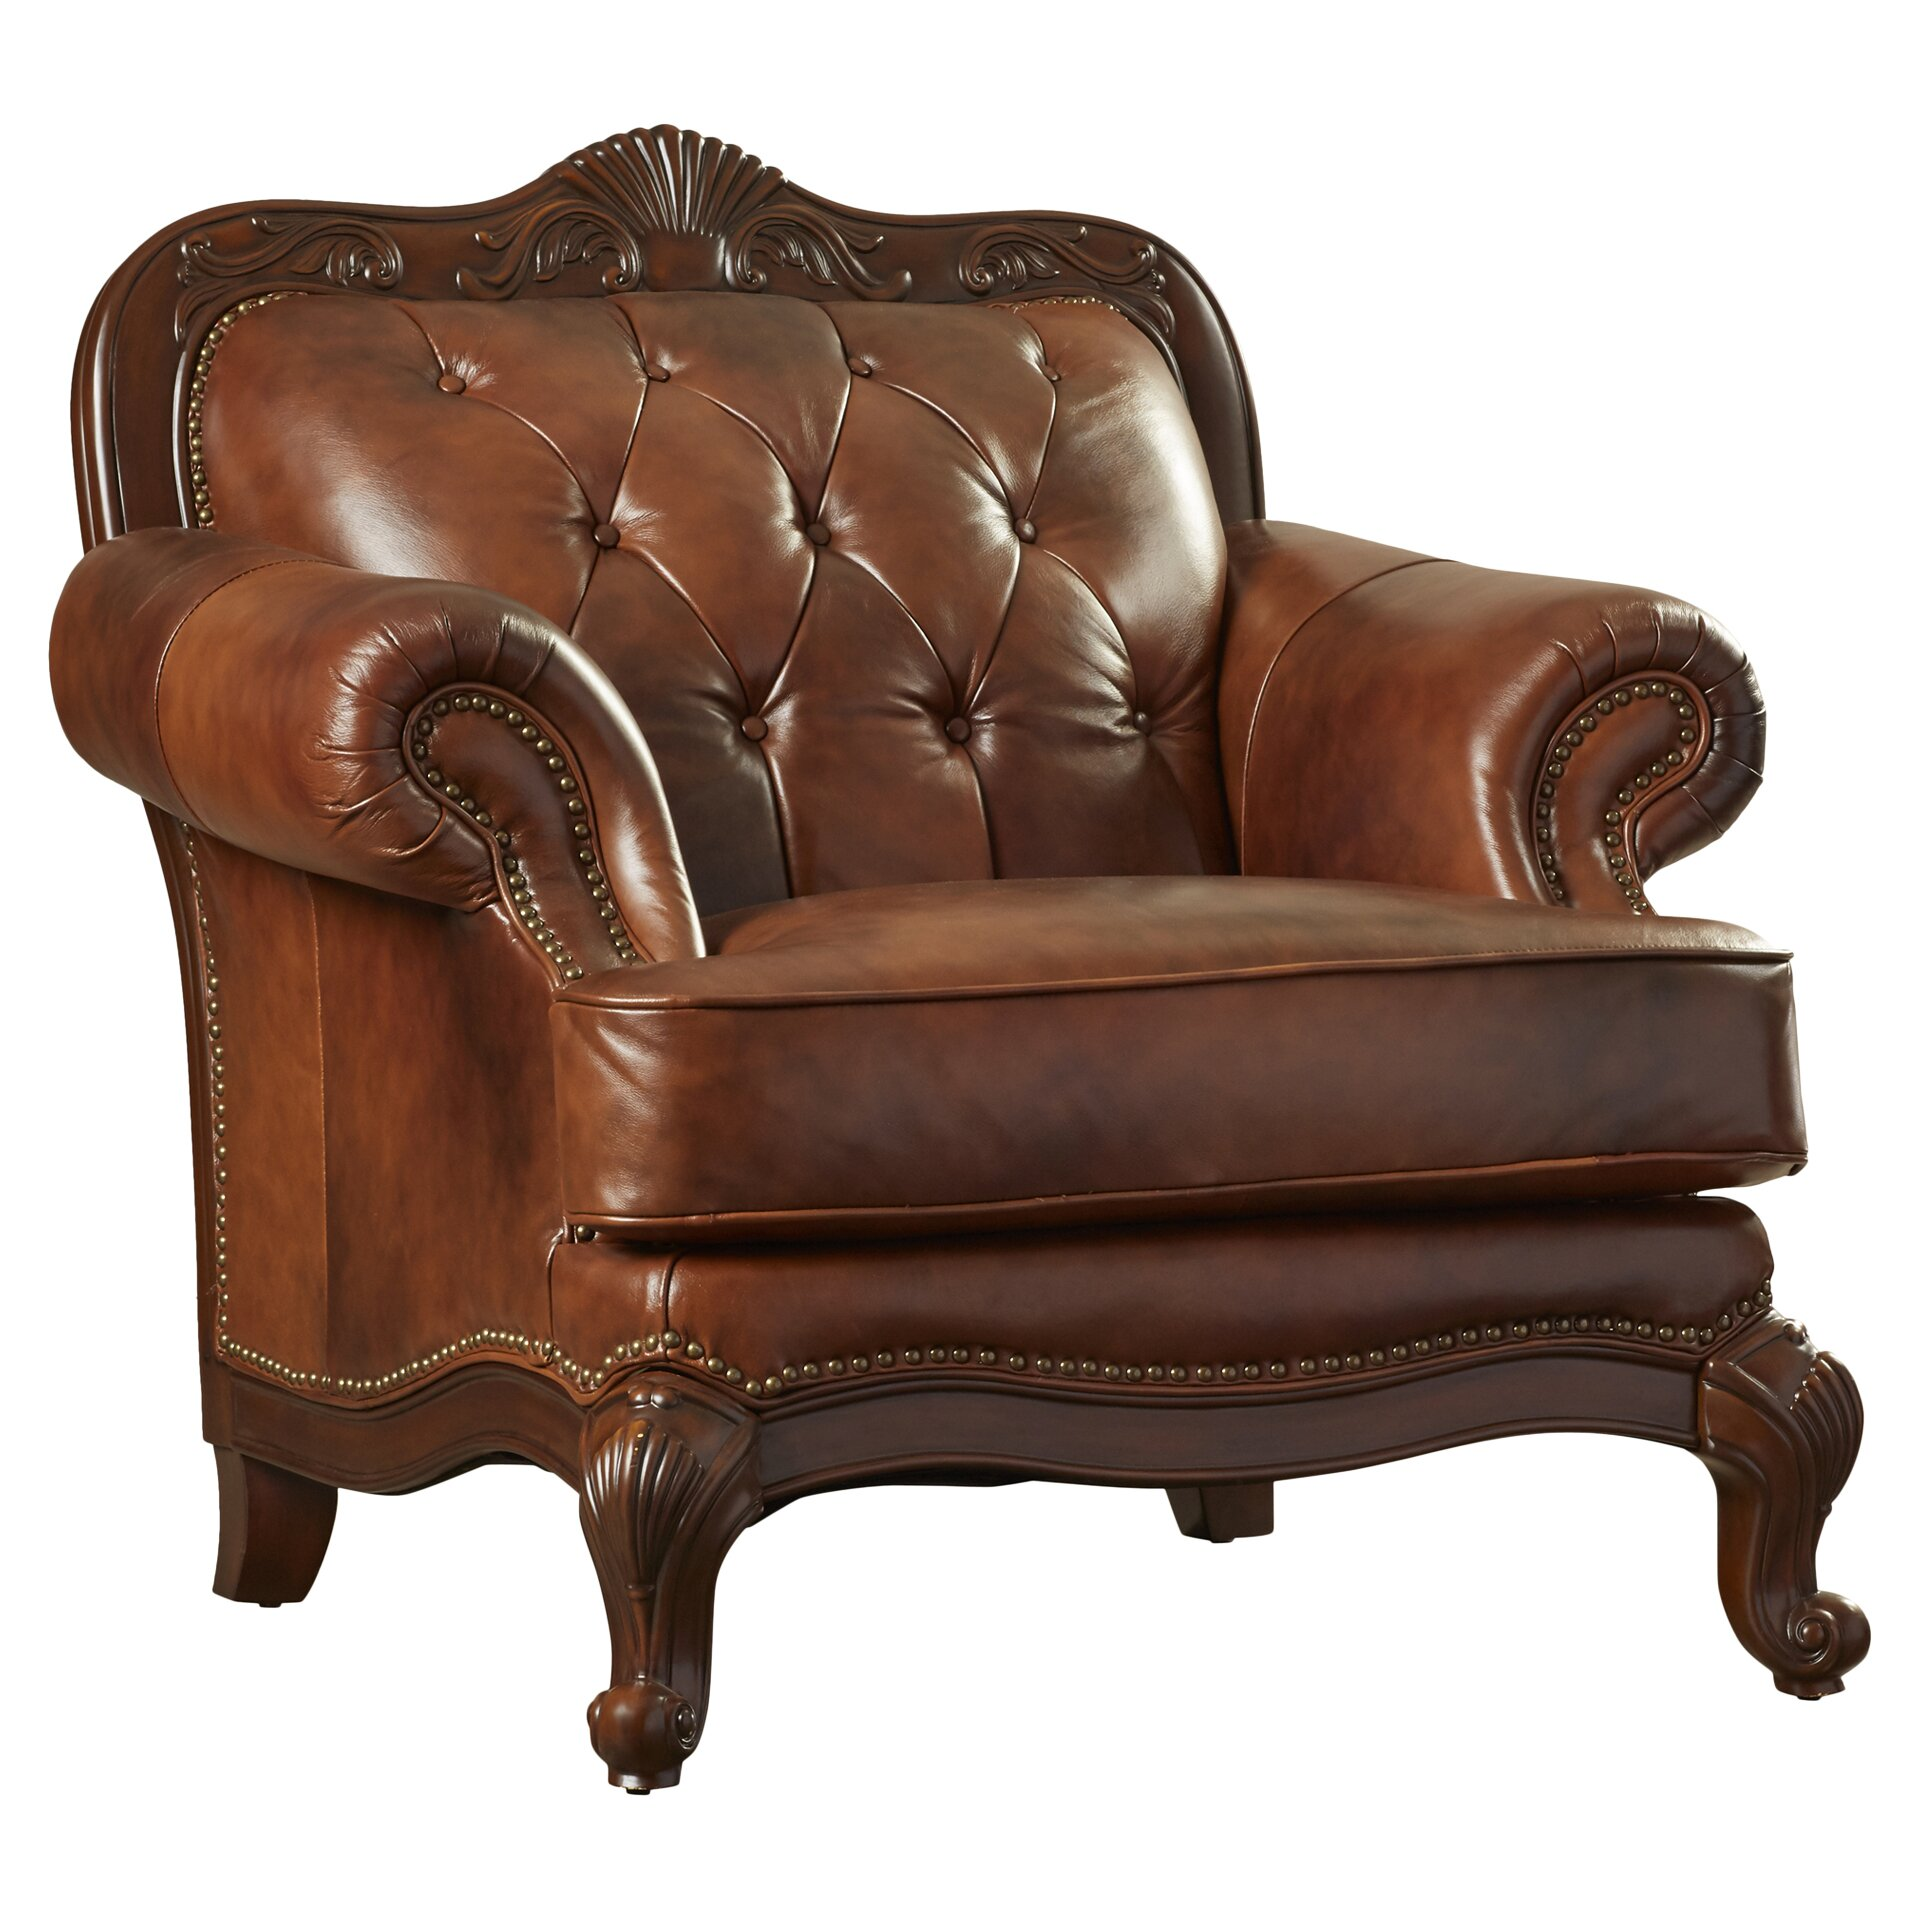 Darby Home Co Smith Leather Club Chair Reviews Wayfair